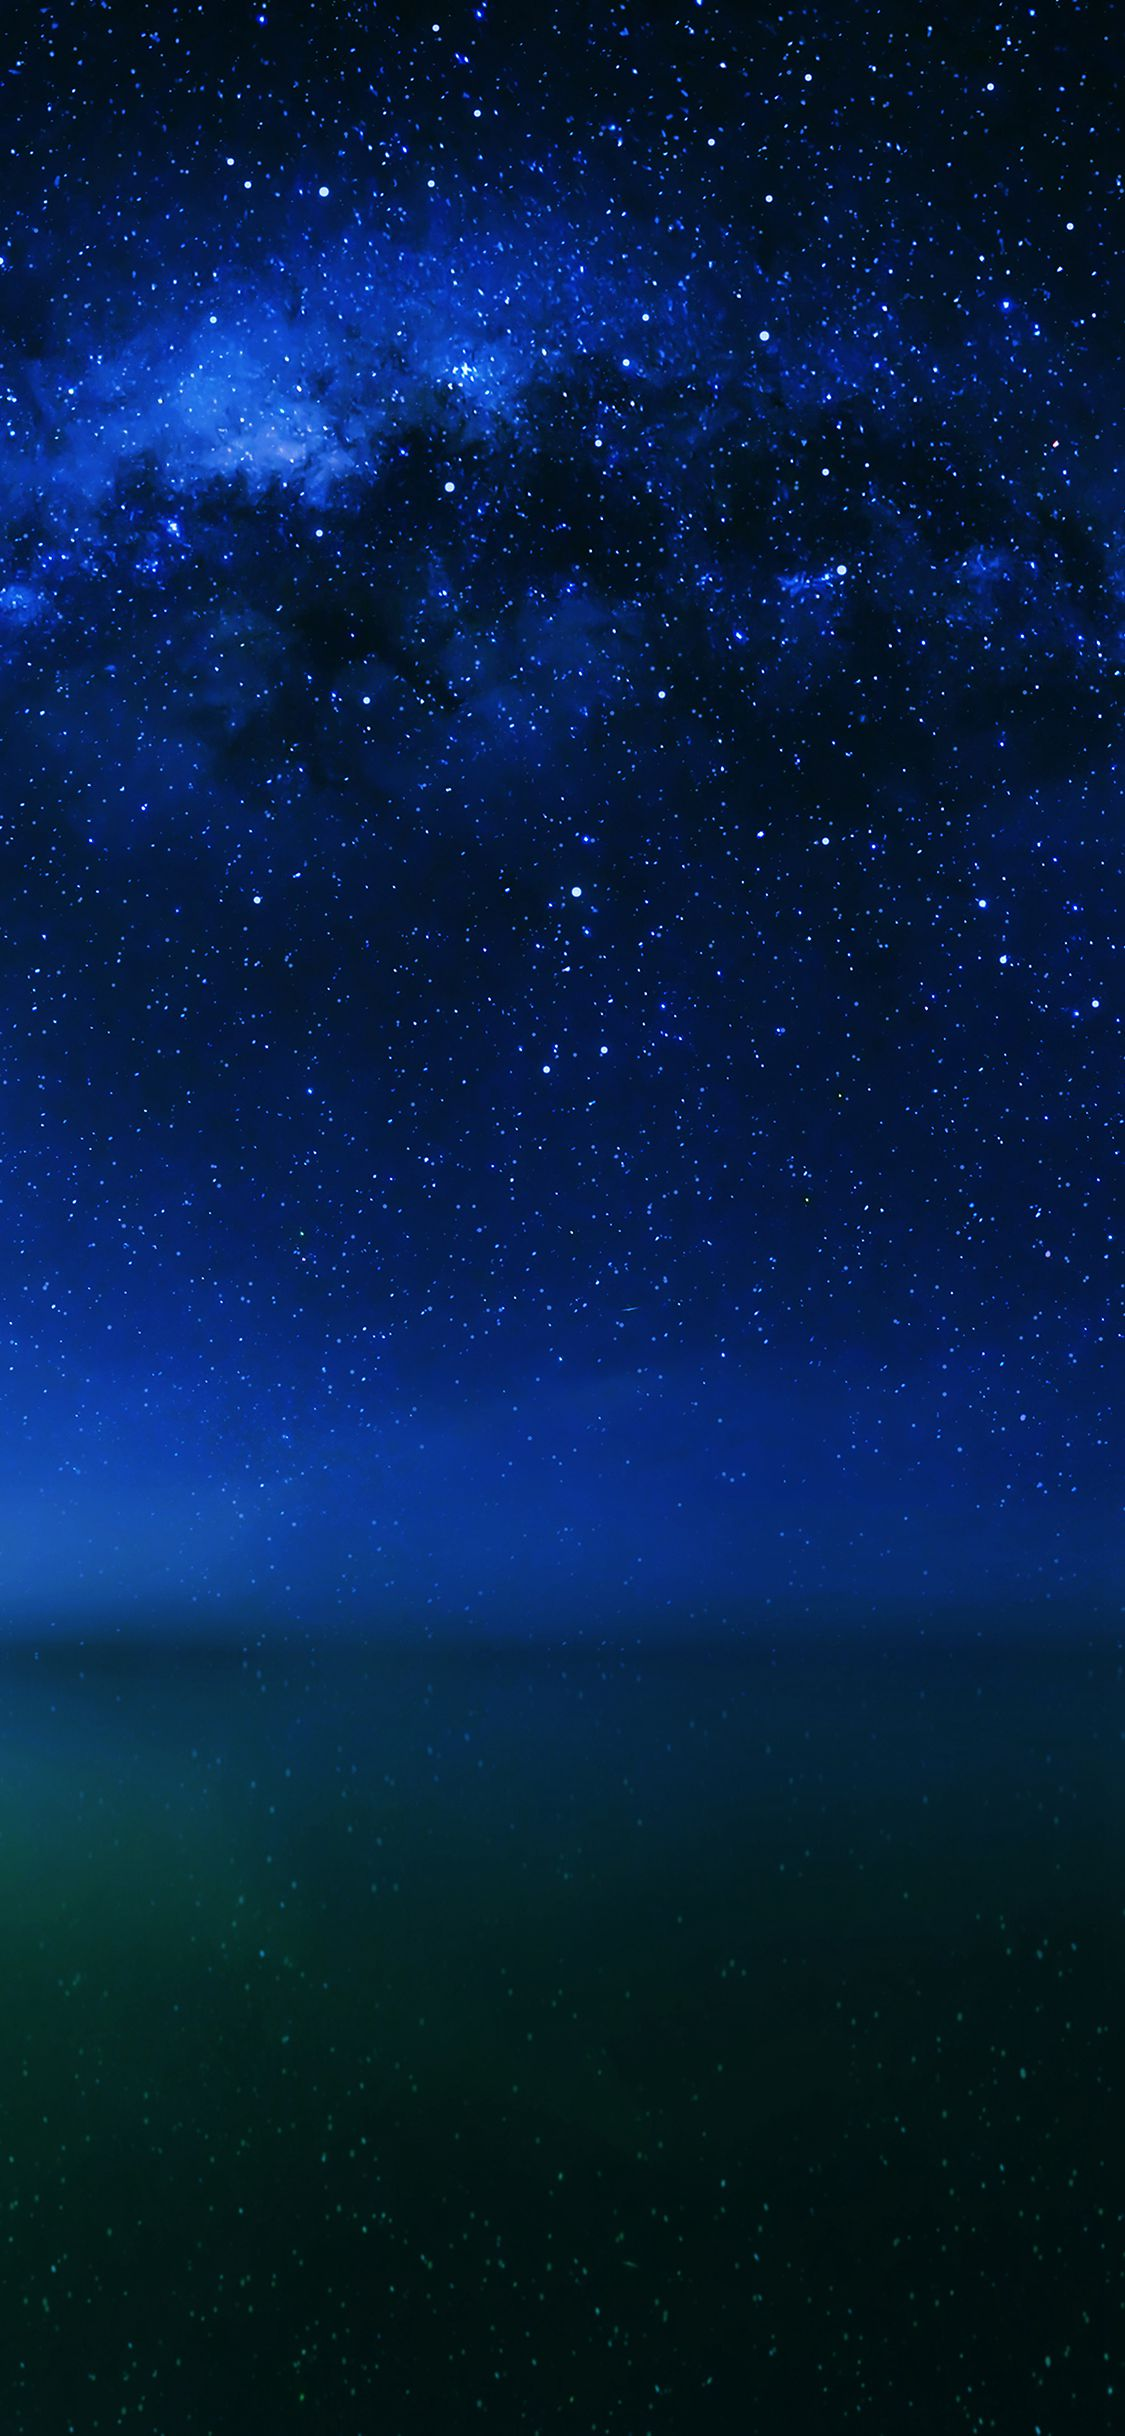 Cosmos Night Live Lake Space Starry Iphone X Wallpapers Free